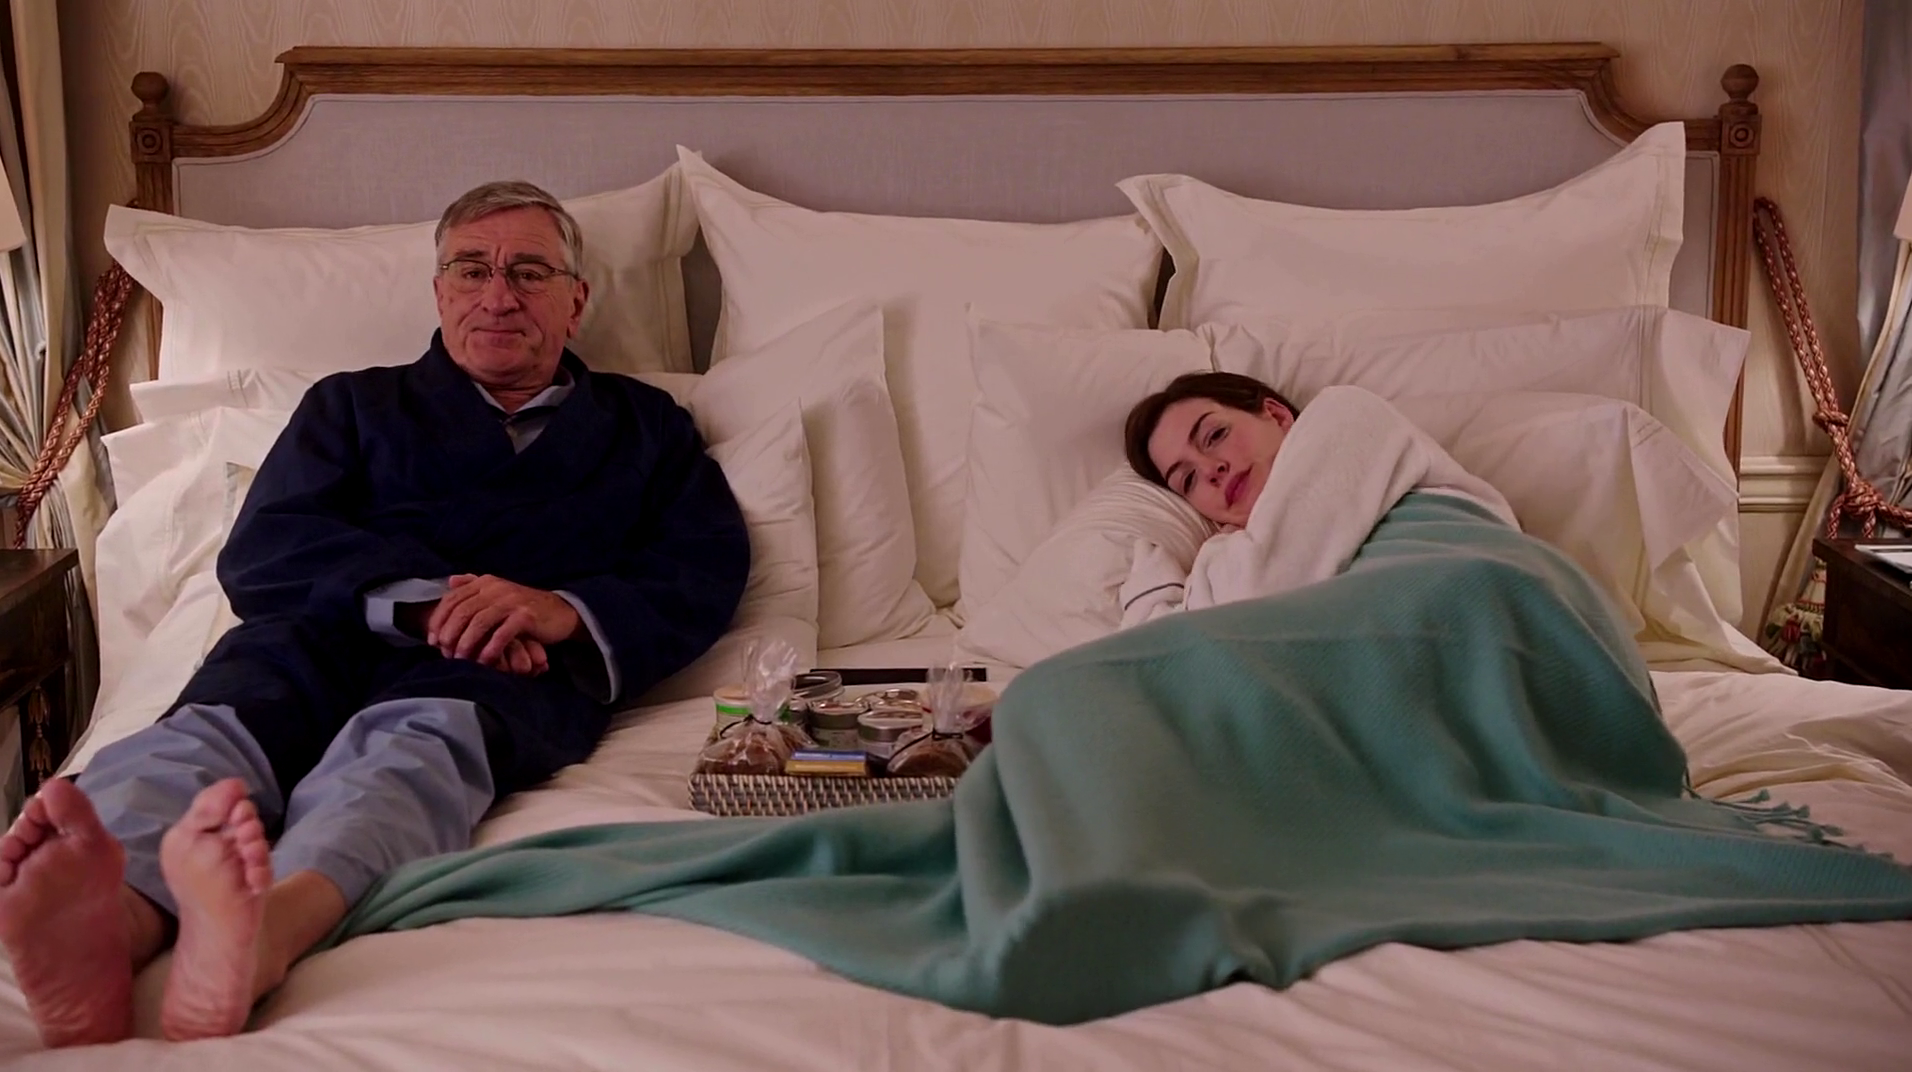 The Intern film still 4